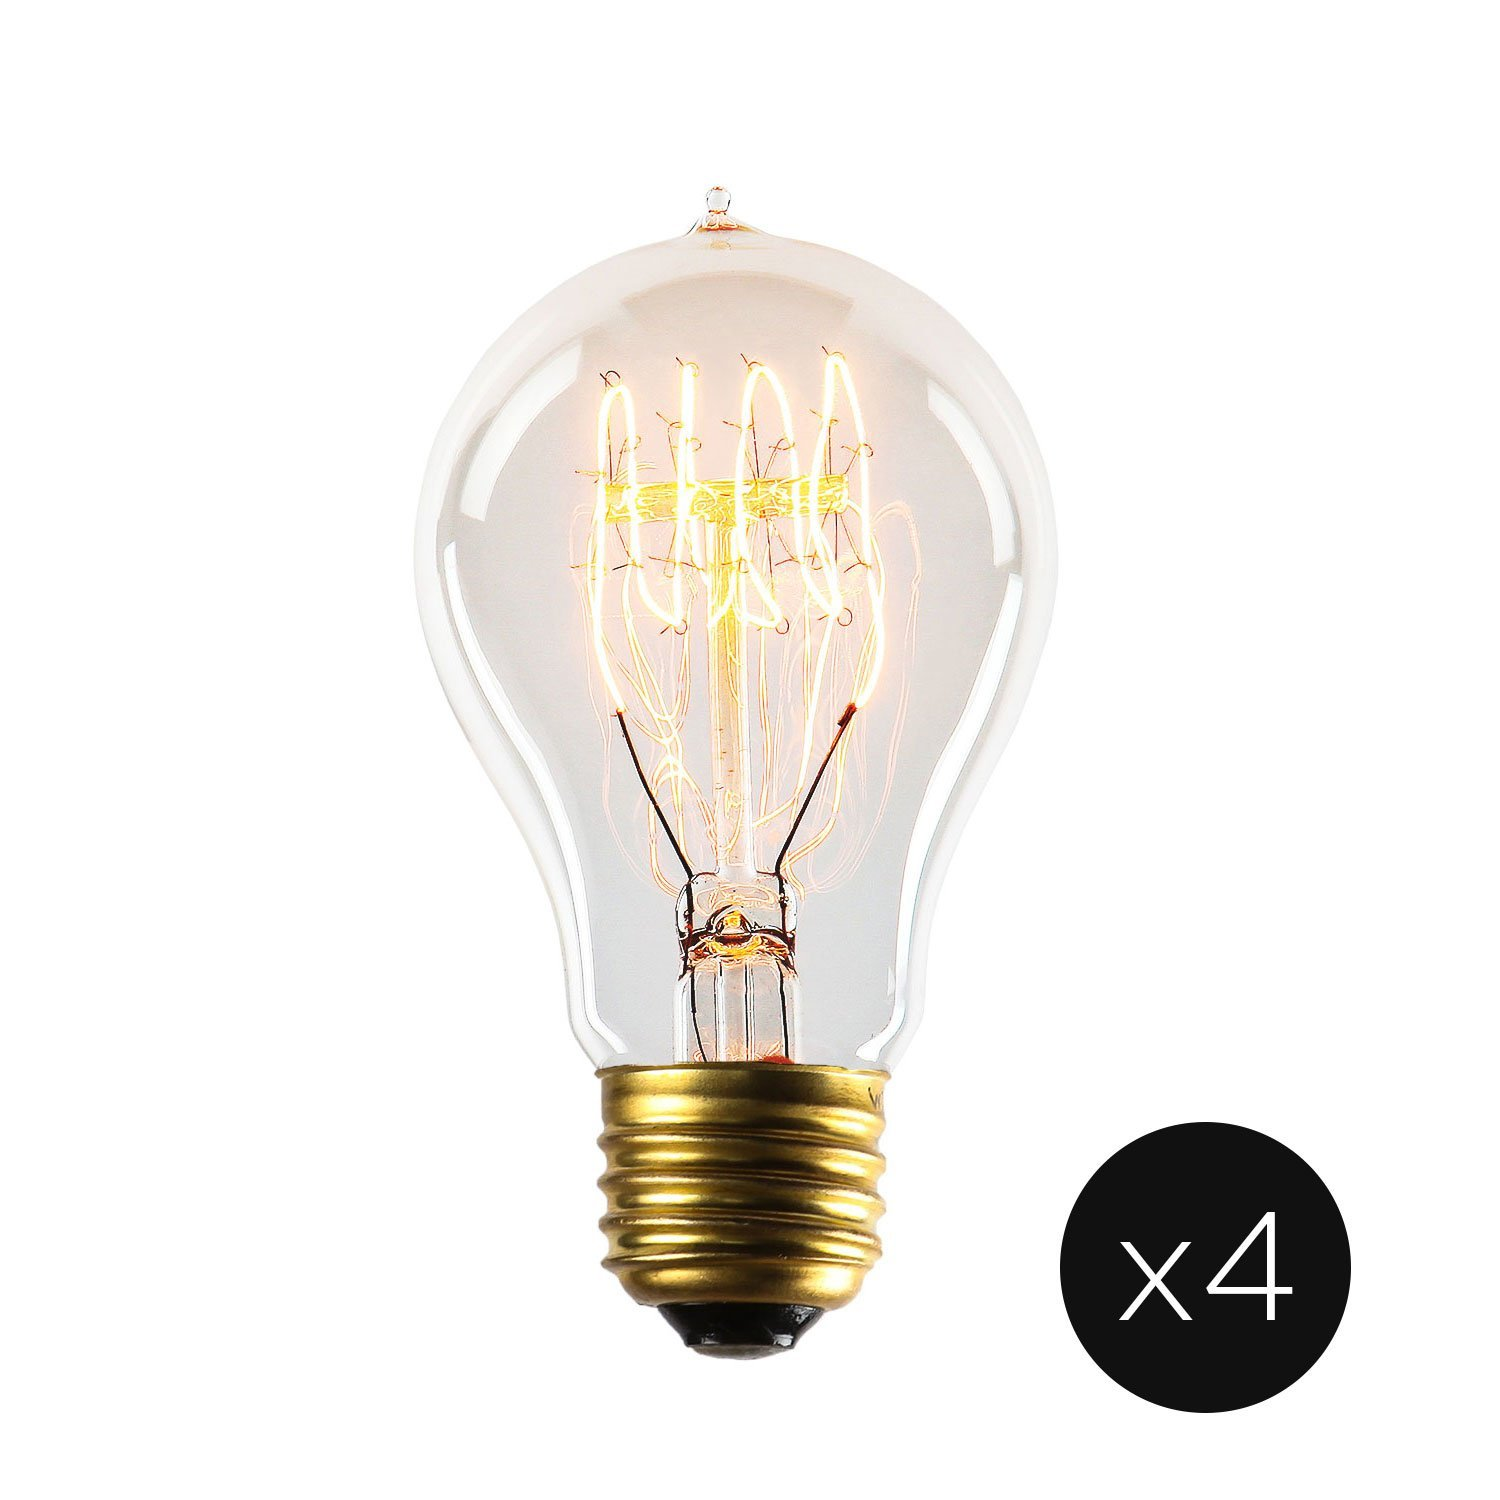 40W Edison Light Bulb A19 - Vintage Style Filament Bulbs, Fully Dimmable, E26 (Medium) Base, Warm White, Horizontal Spiral, Coney Island Collection - Set of 4